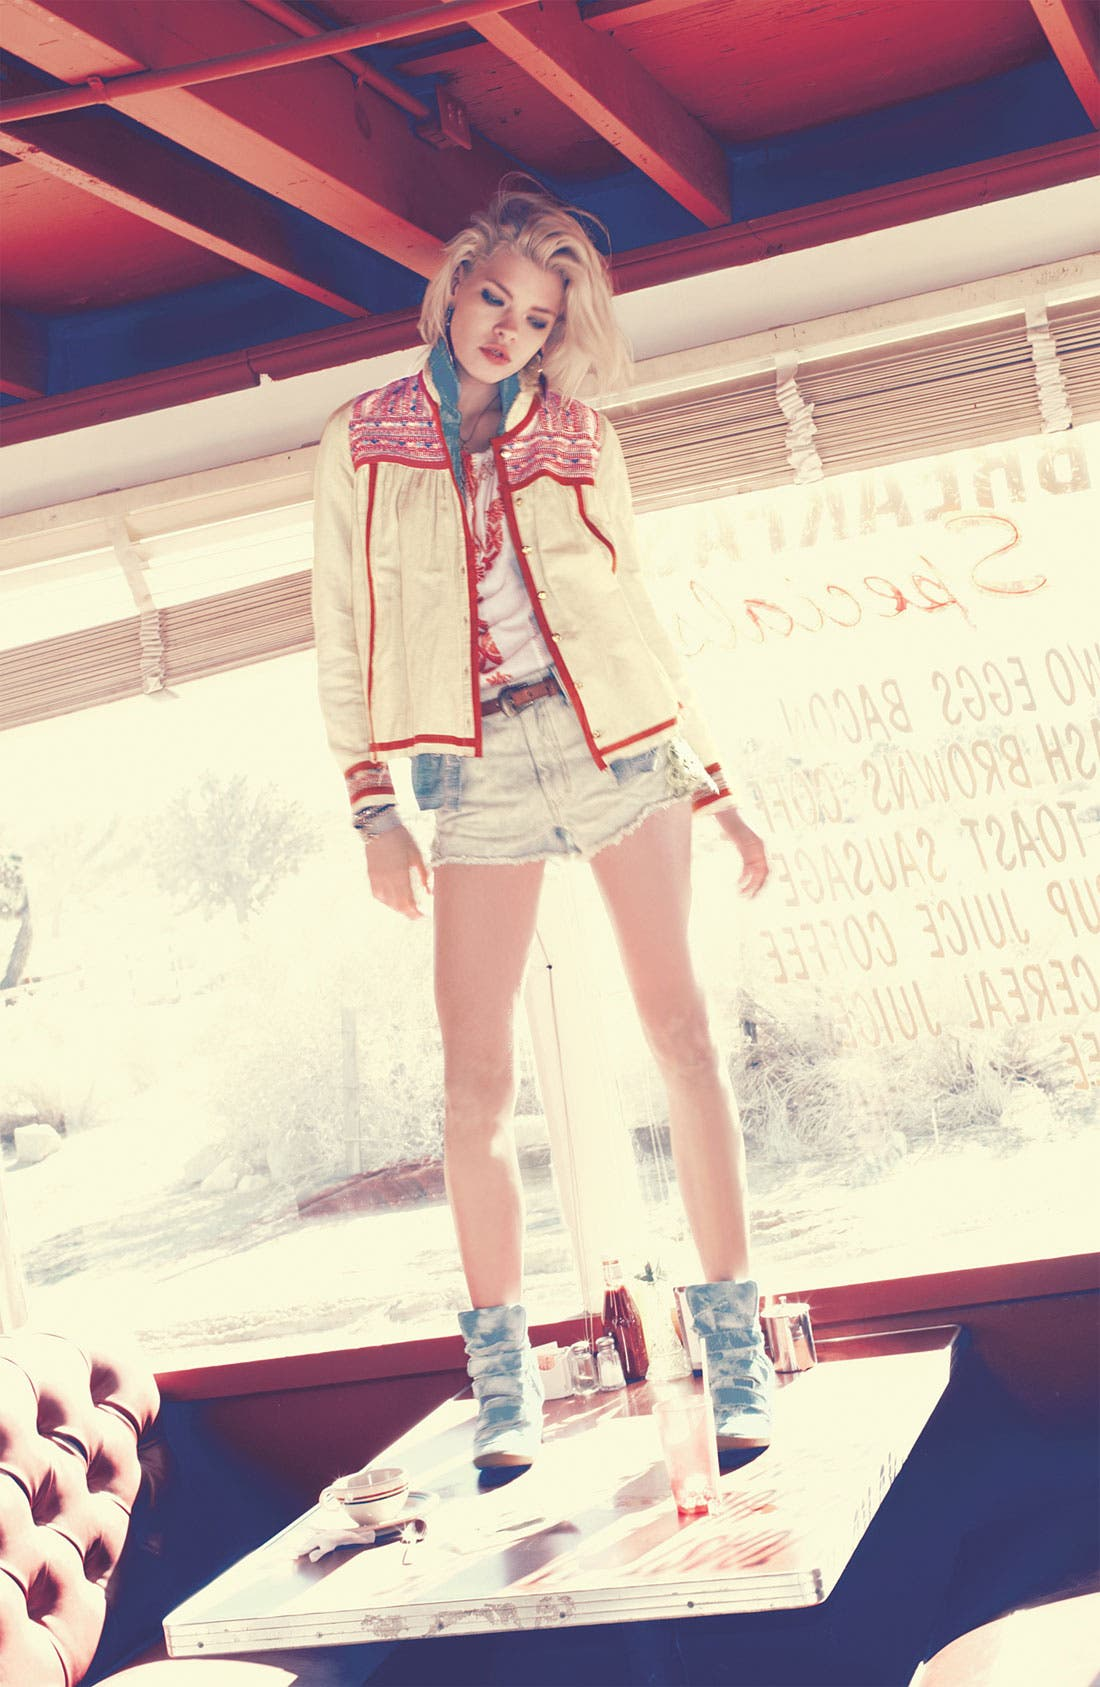 Alternate Image 1 Selected - Free People Jacket, Shirt & Shorts